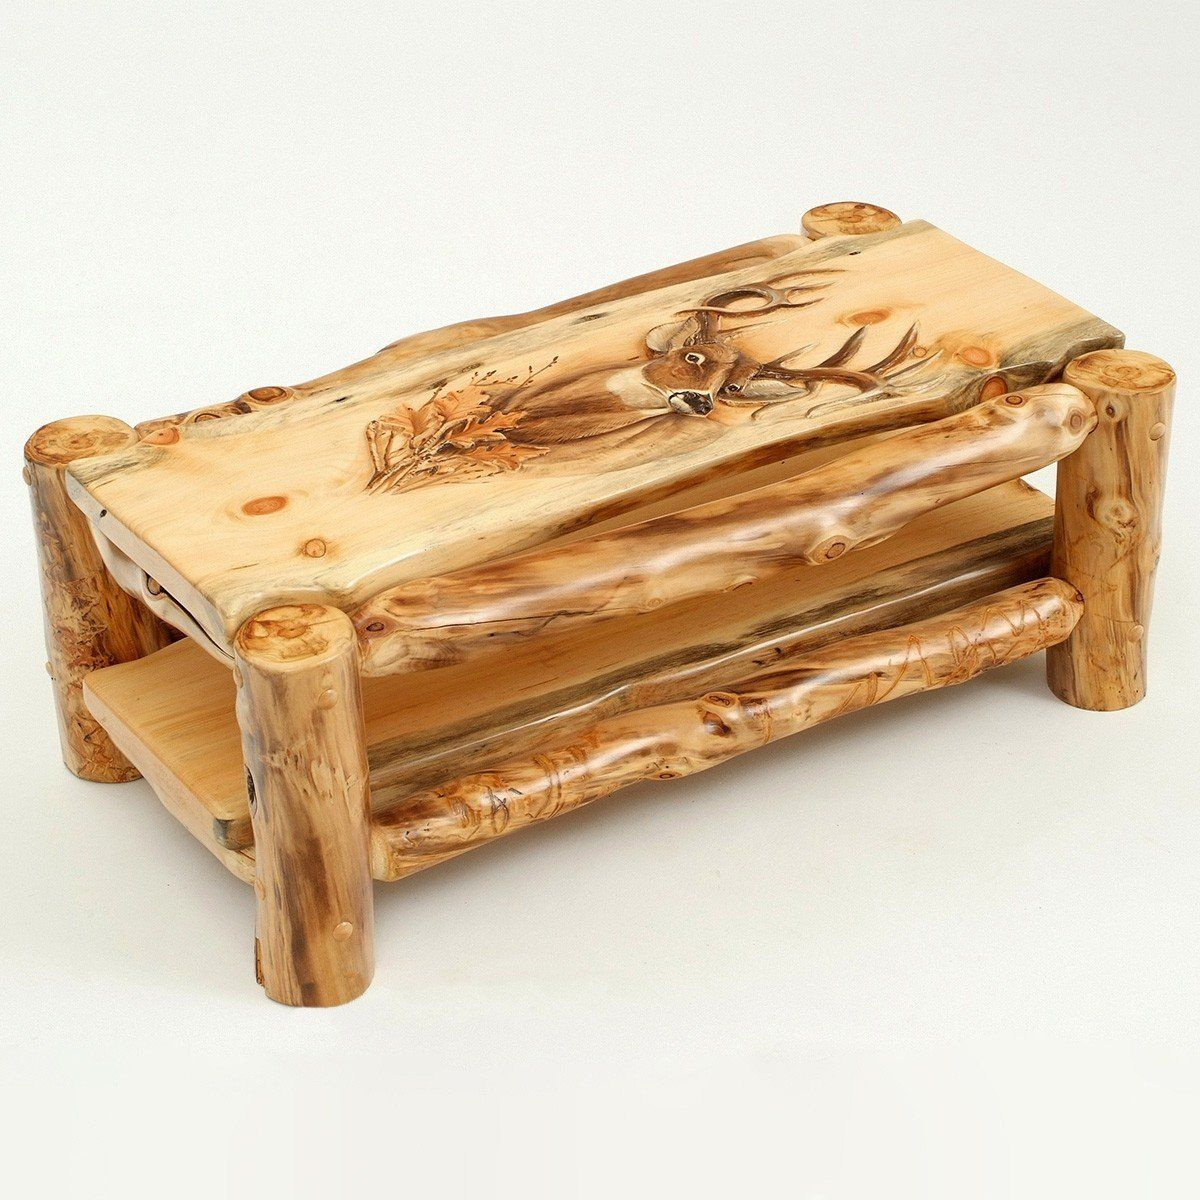 Carved Aspen Wildlife Mountain Man Coffee Table In 2020 Rustic